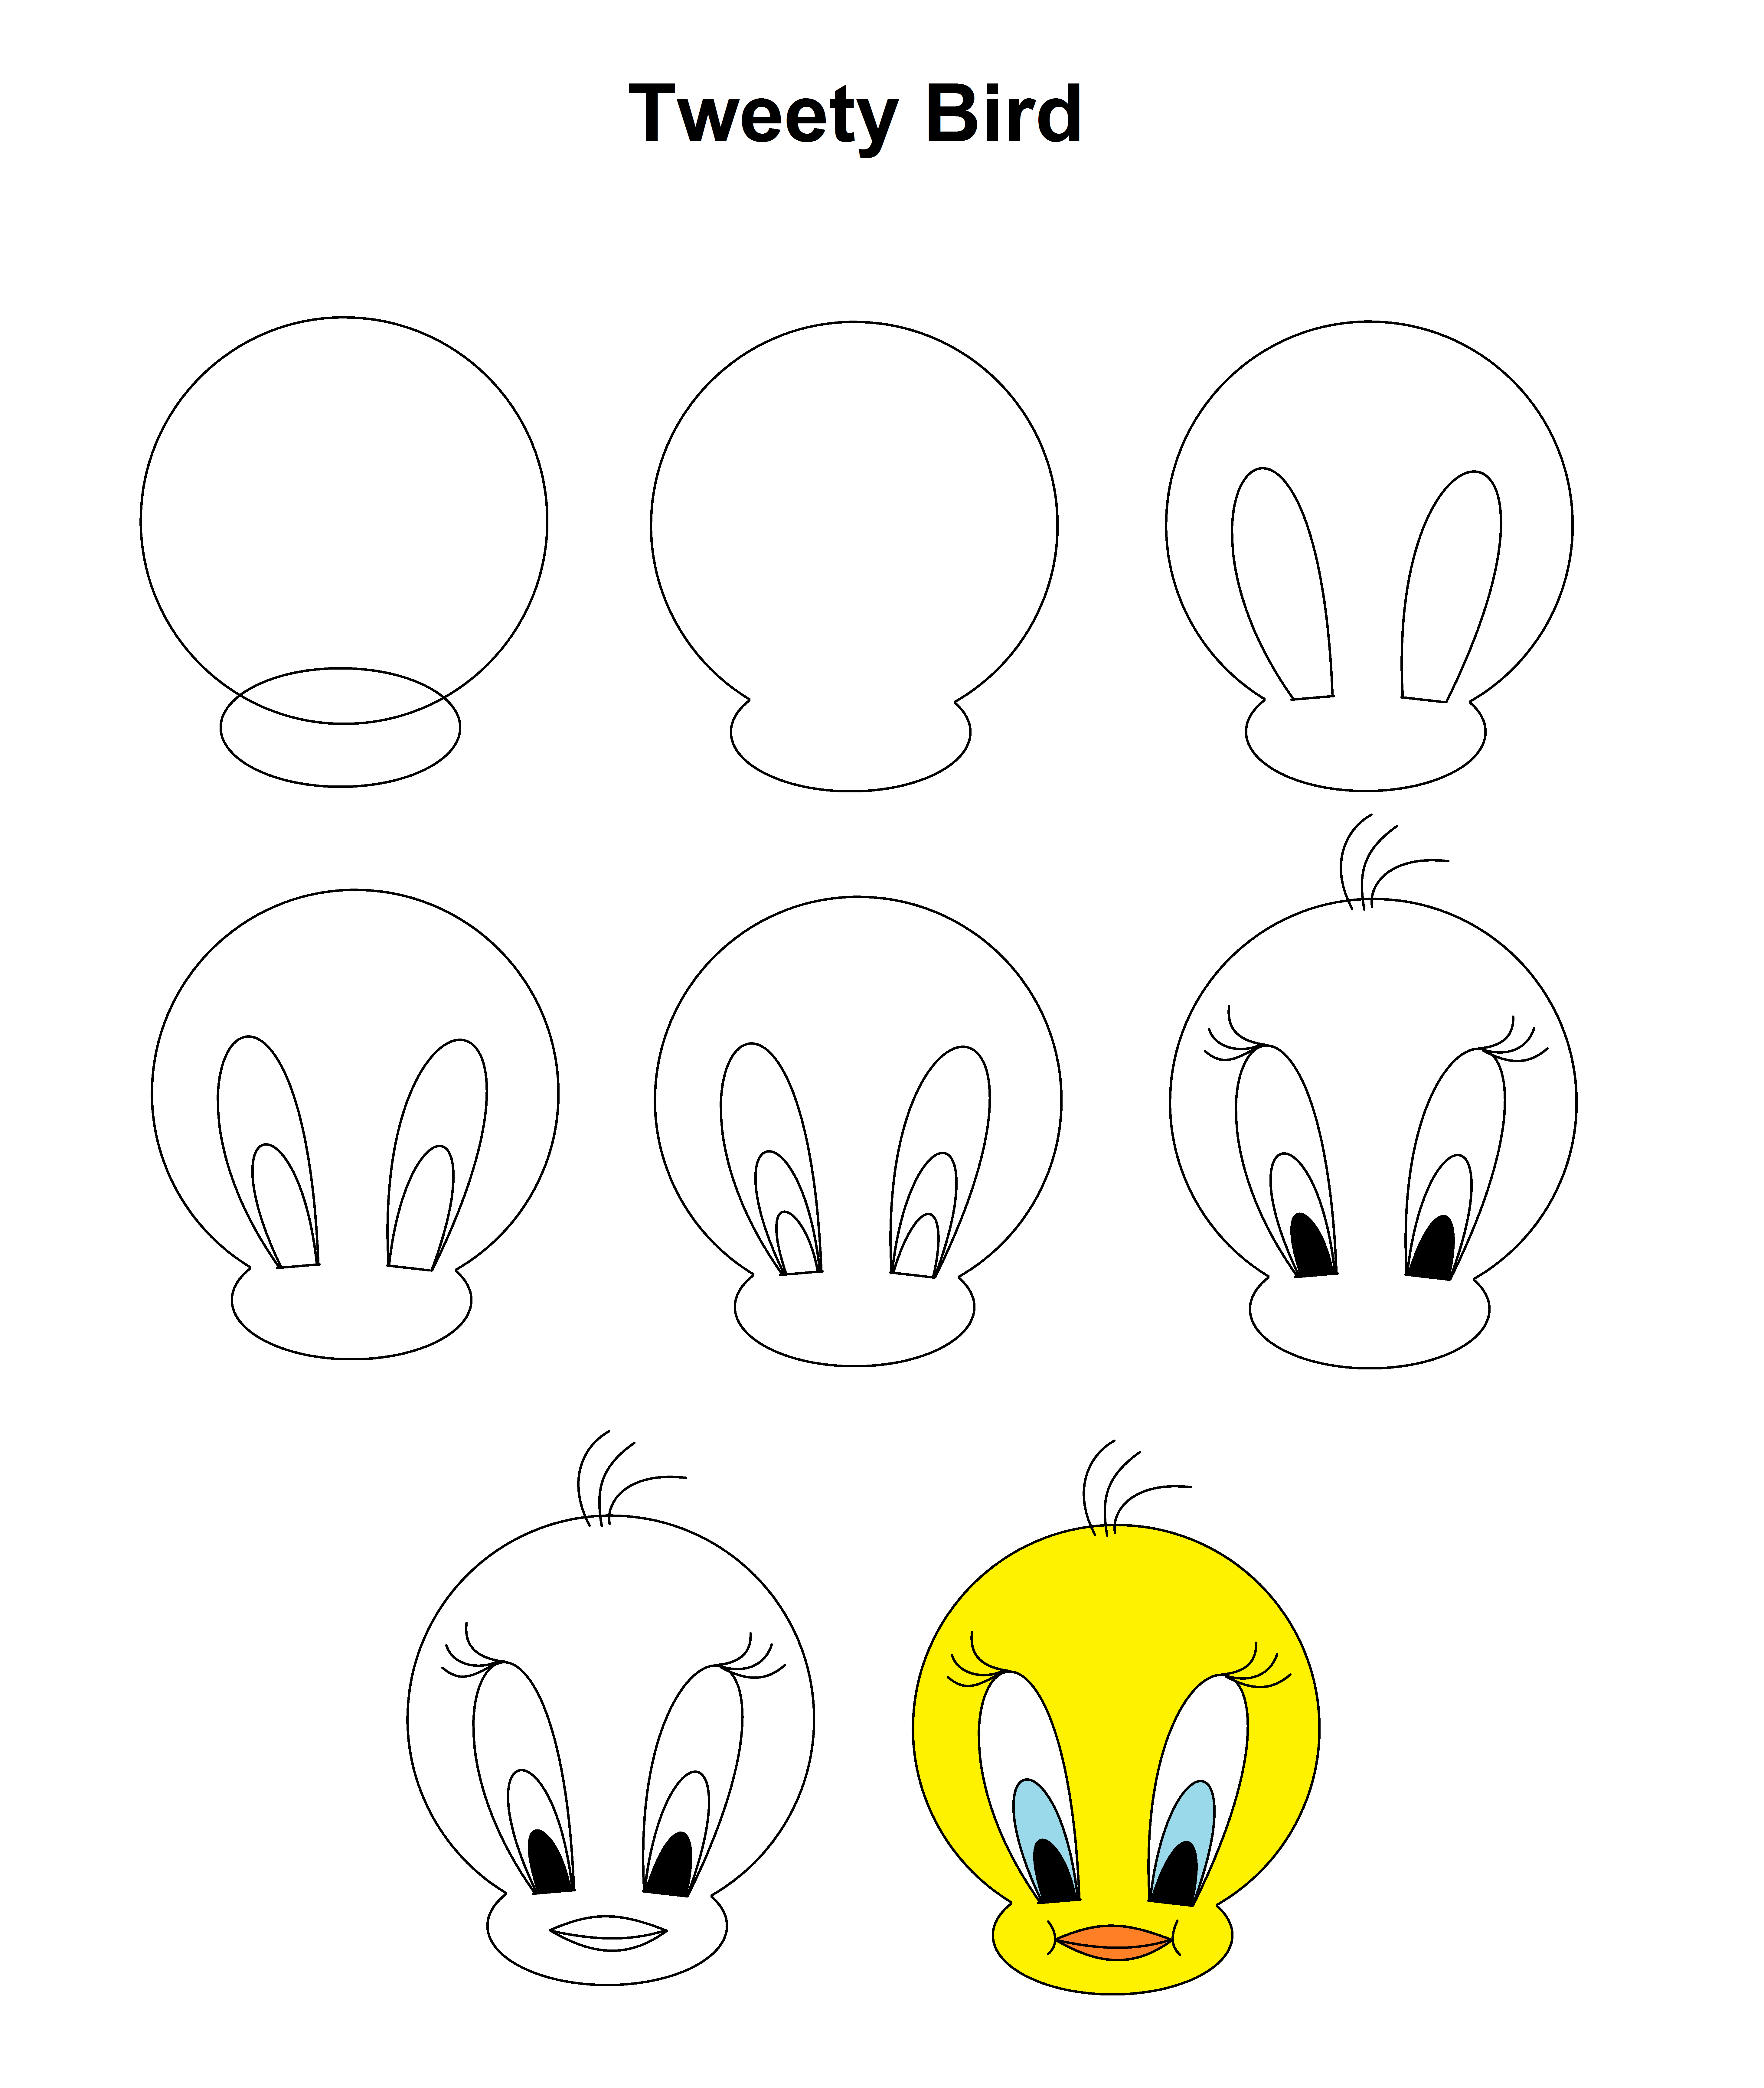 Tweety Bird Step By Step Tutorial Easy Disney Drawings Bird Drawings Art Drawings Sketches Simple